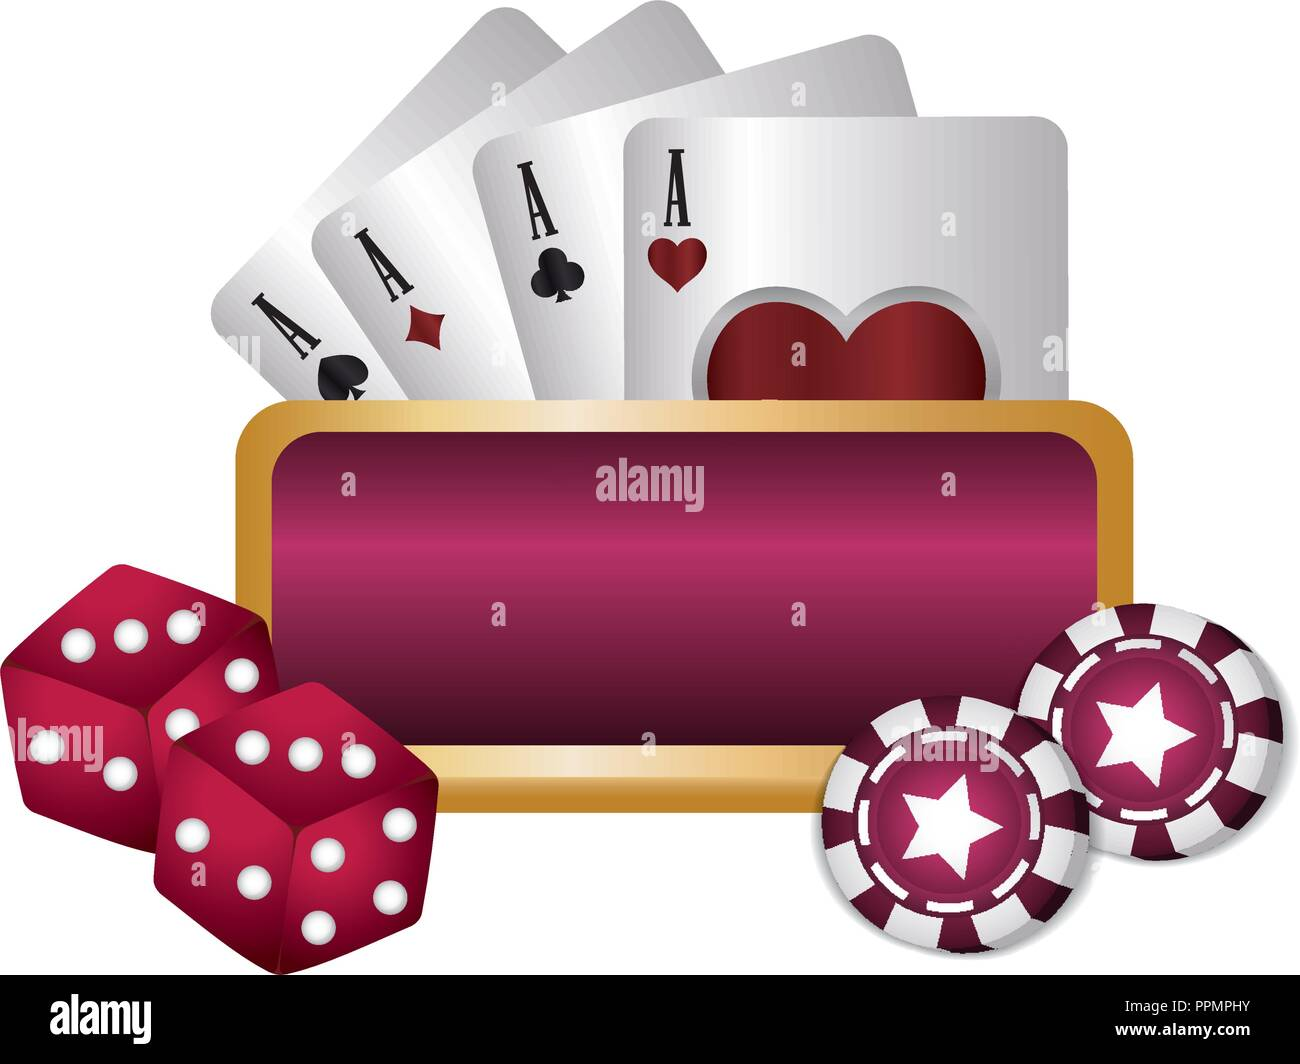 Betting Board Stock Photos Images Alamy Ppm Wiring Diagram For Vector Casino Poker Empty Dices Chips And Cards Illustration Image